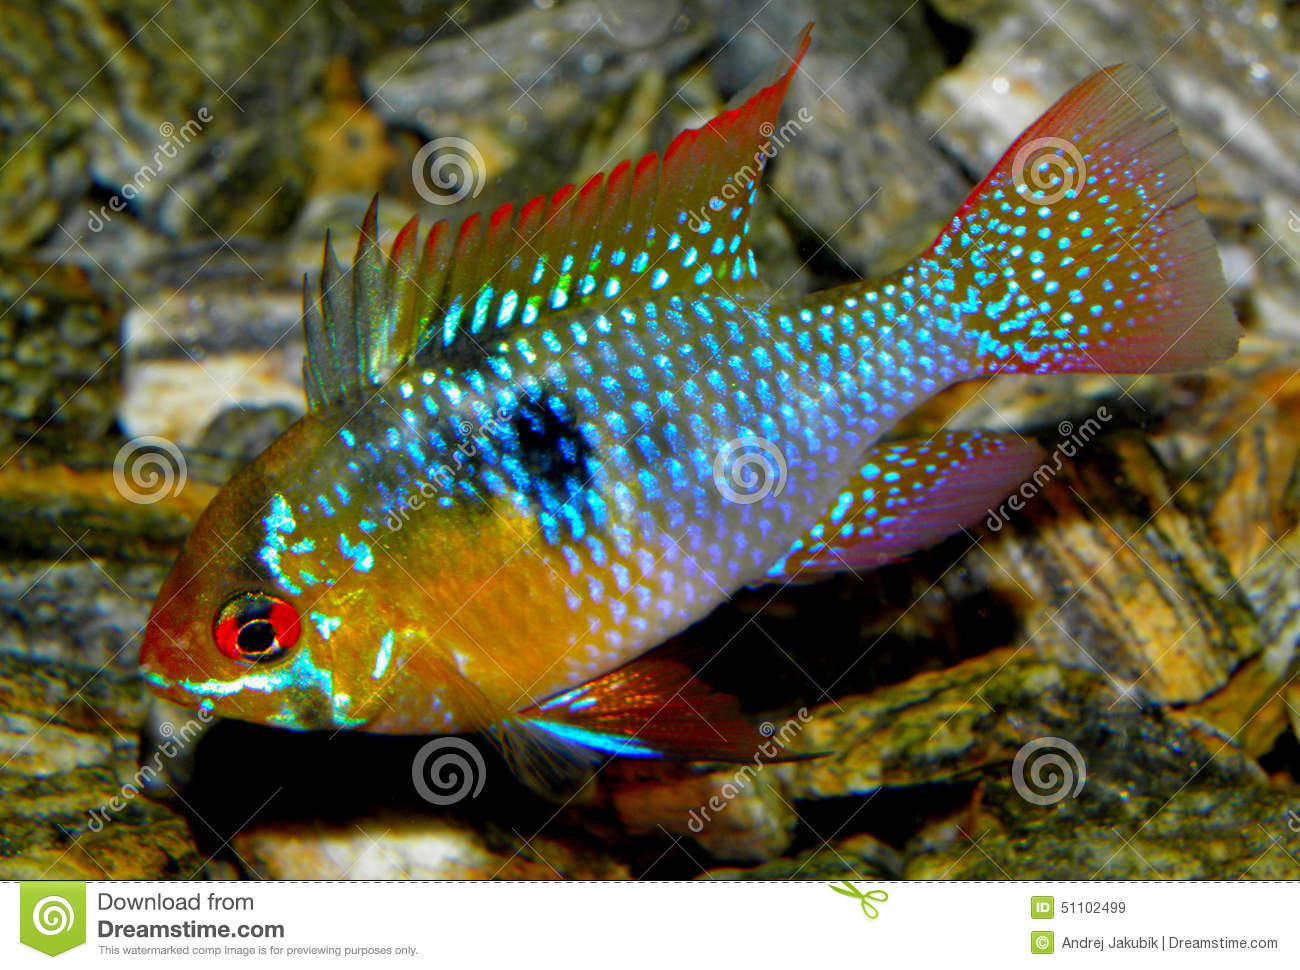 Poisson Tropicaux Pour Aquarium Of Poissons D 39 Aquarium D 39 Am Rique Du Sud Ramirezi D 39 Eau Douce